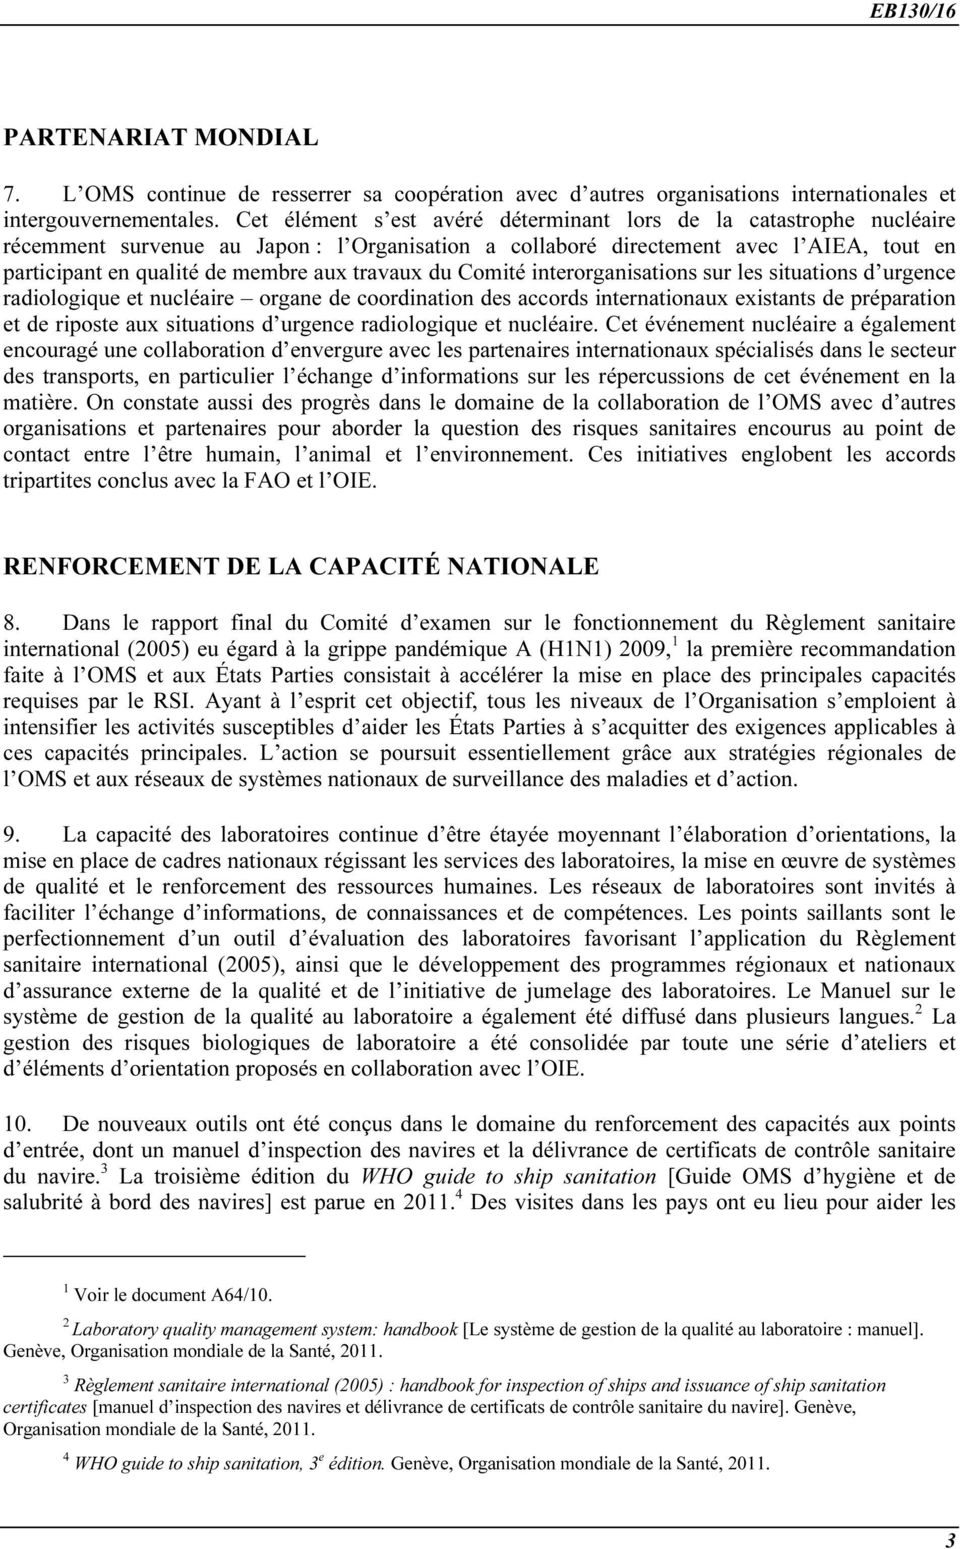 travaux du Comité interorganisations sur les situations d urgence radiologique et nucléaire organe de coordination des accords internationaux existants de préparation et de riposte aux situations d